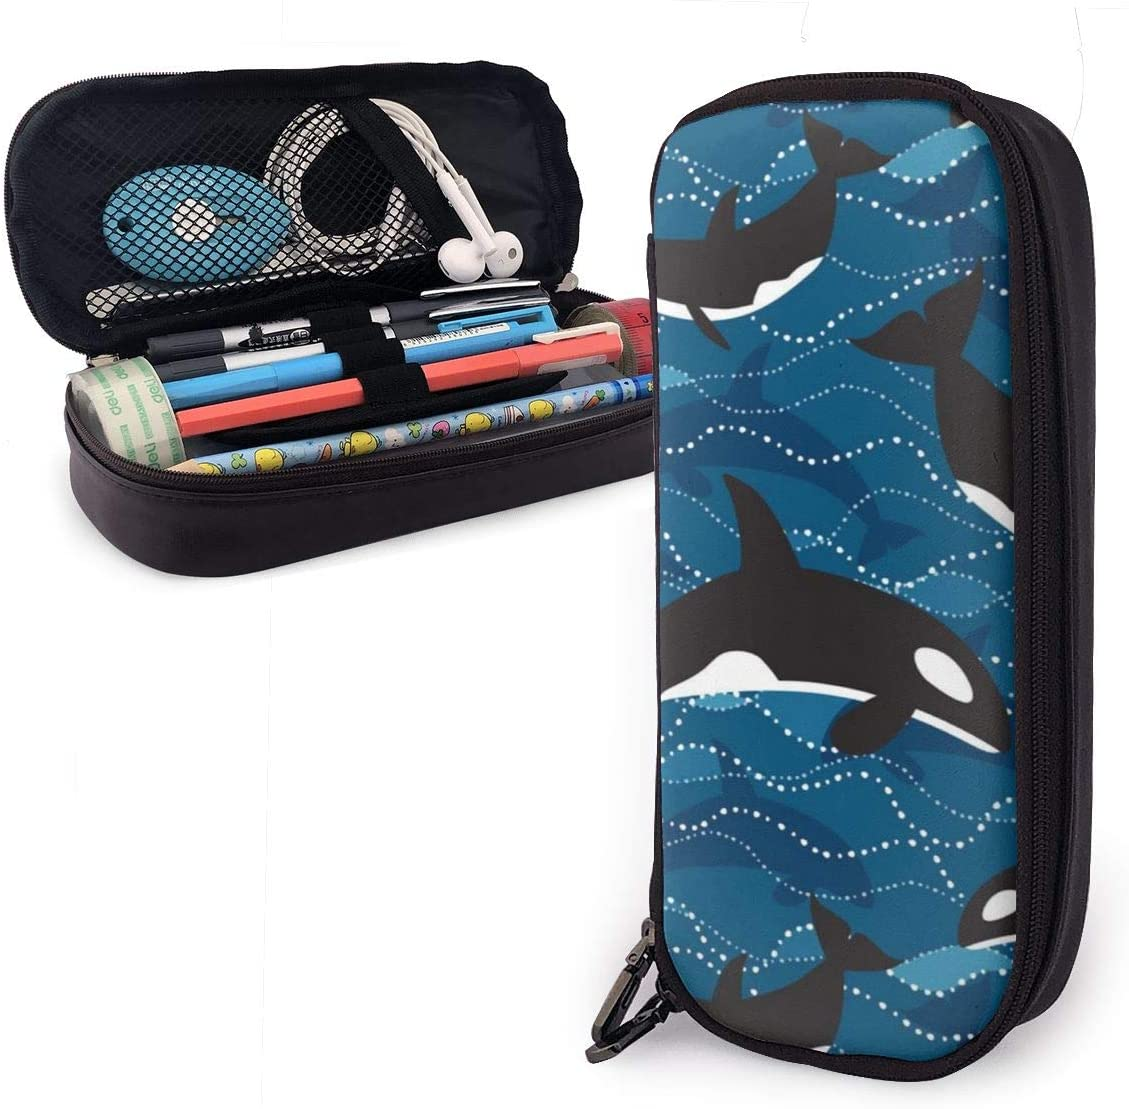 NiYoung Unisex Big Capacity Pencil Case Holder Pen Organizer Pouch Stationery Box Large Storage College Middle School & Office Supplies Stationery - Ocean Orcas